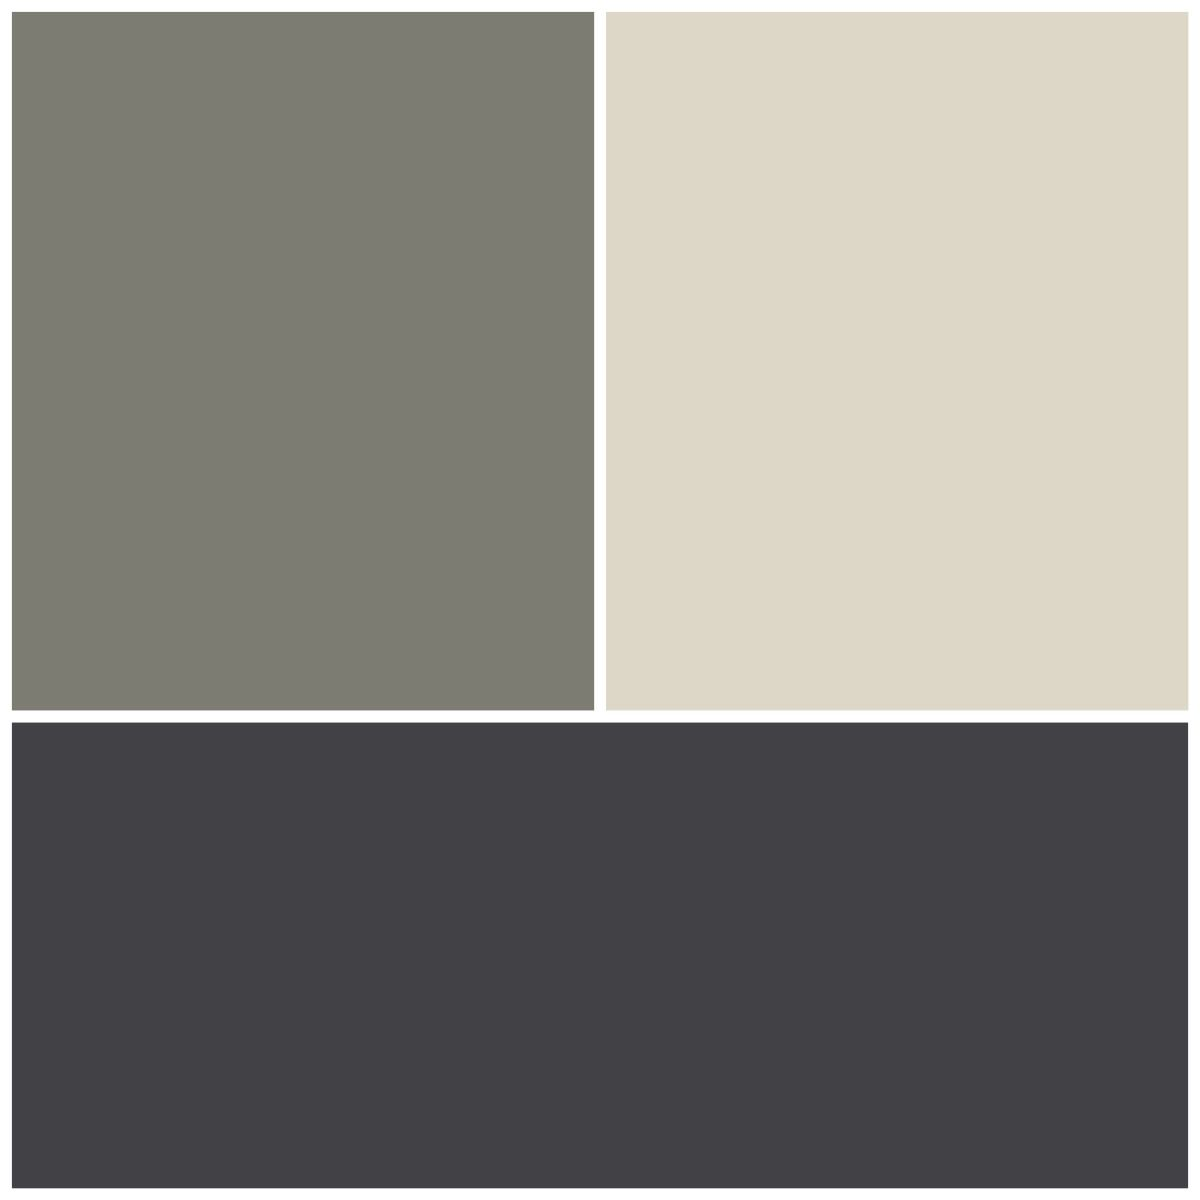 Colorbond roofing colours pictures to pin on pinterest - Exterior Colour Scheme Top Left Resene Tapa Half Strength Top Right Resene Thorndon Cream